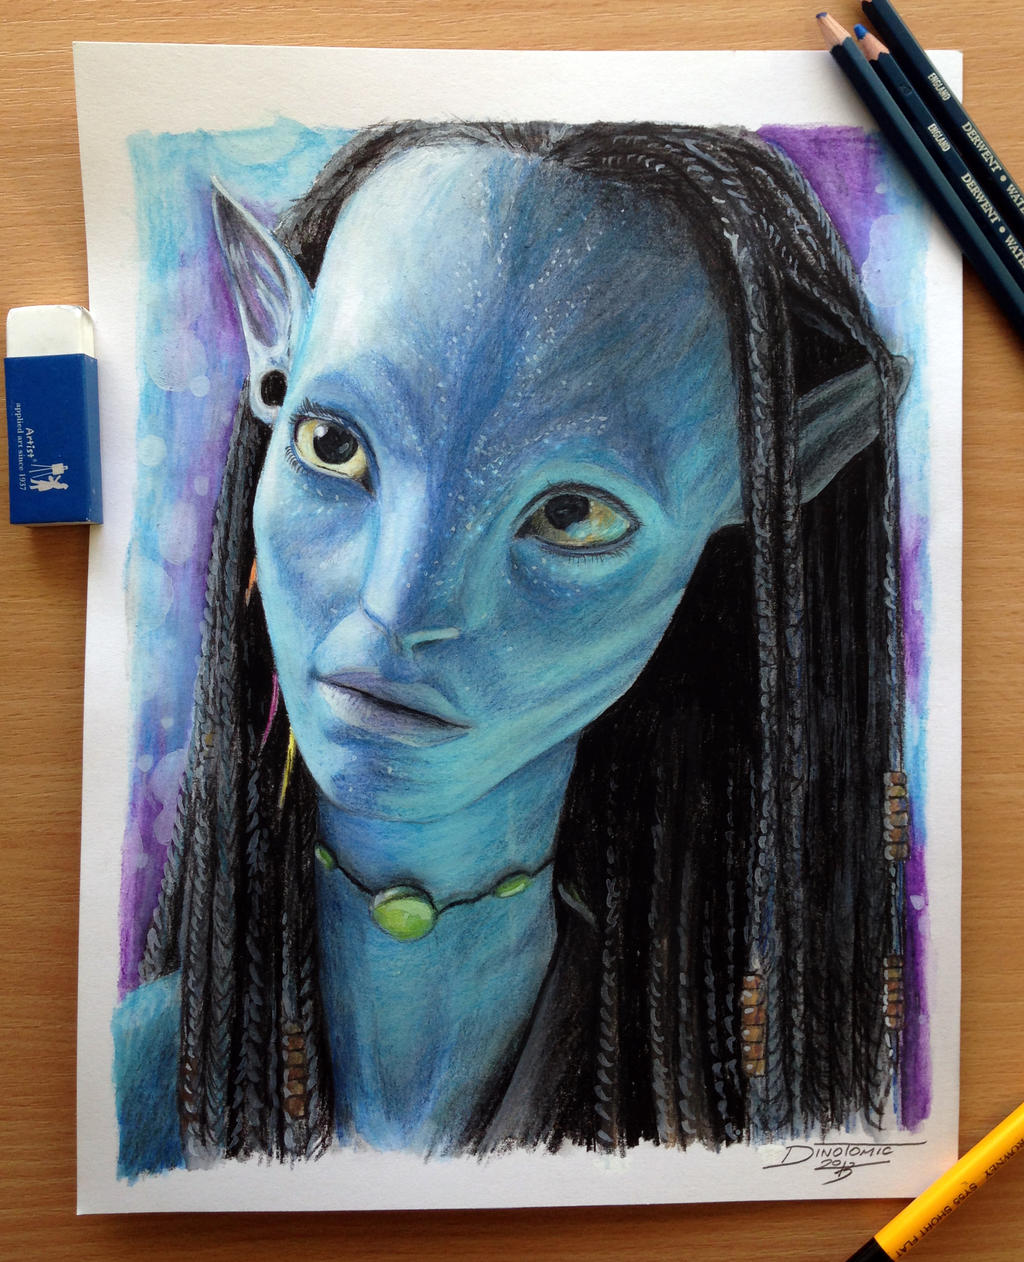 How to draw with colored pencils - Neytiri Color Pencil Drawing By Atomiccircus Neytiri Color Pencil Drawing By Atomiccircus